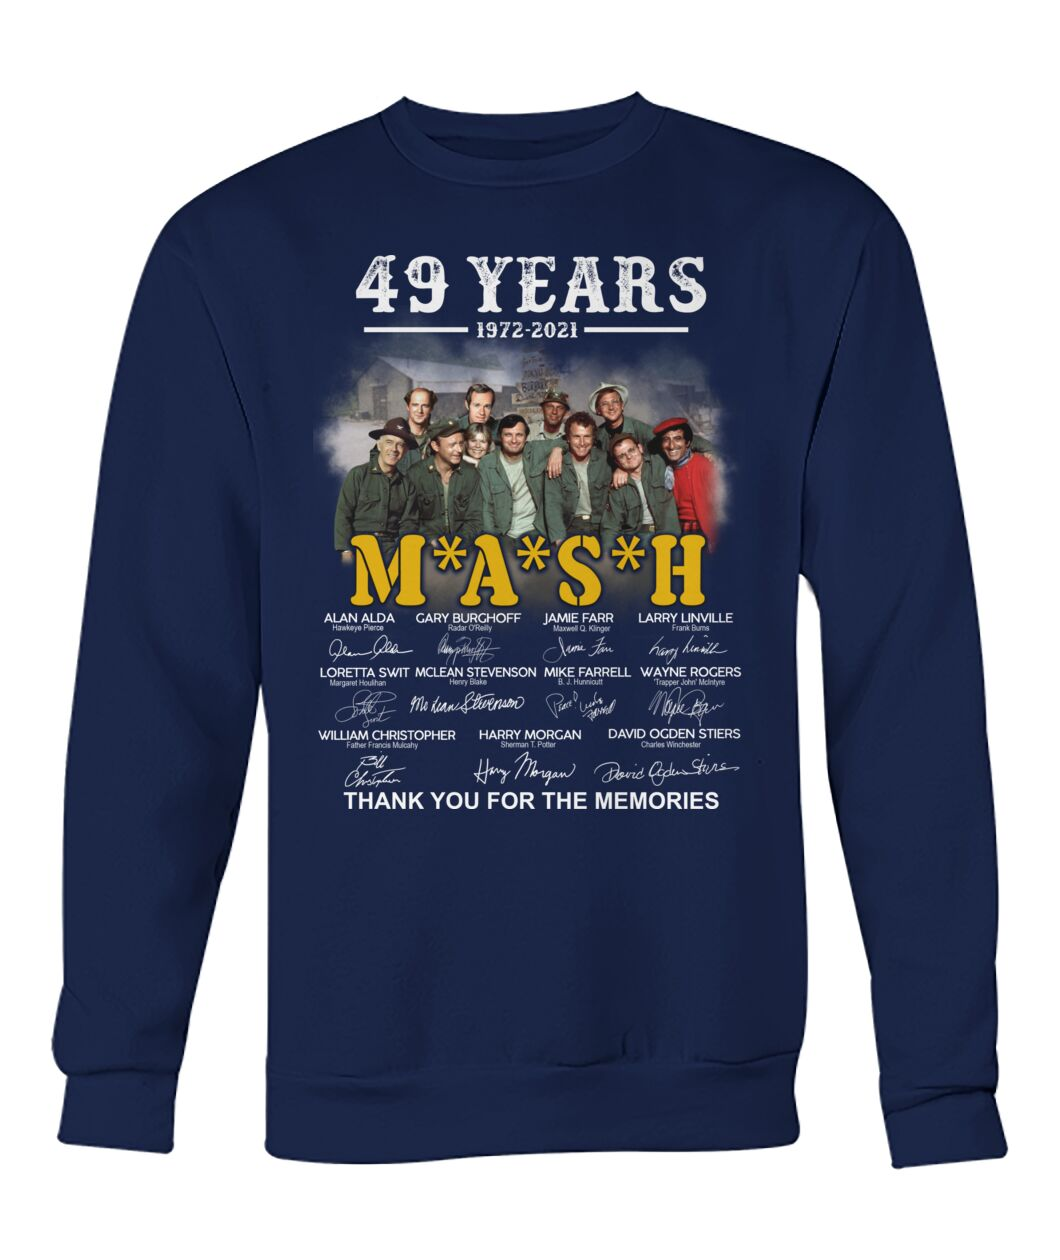 49 years 1972 2021 mash thank you for the memories Shirt 23